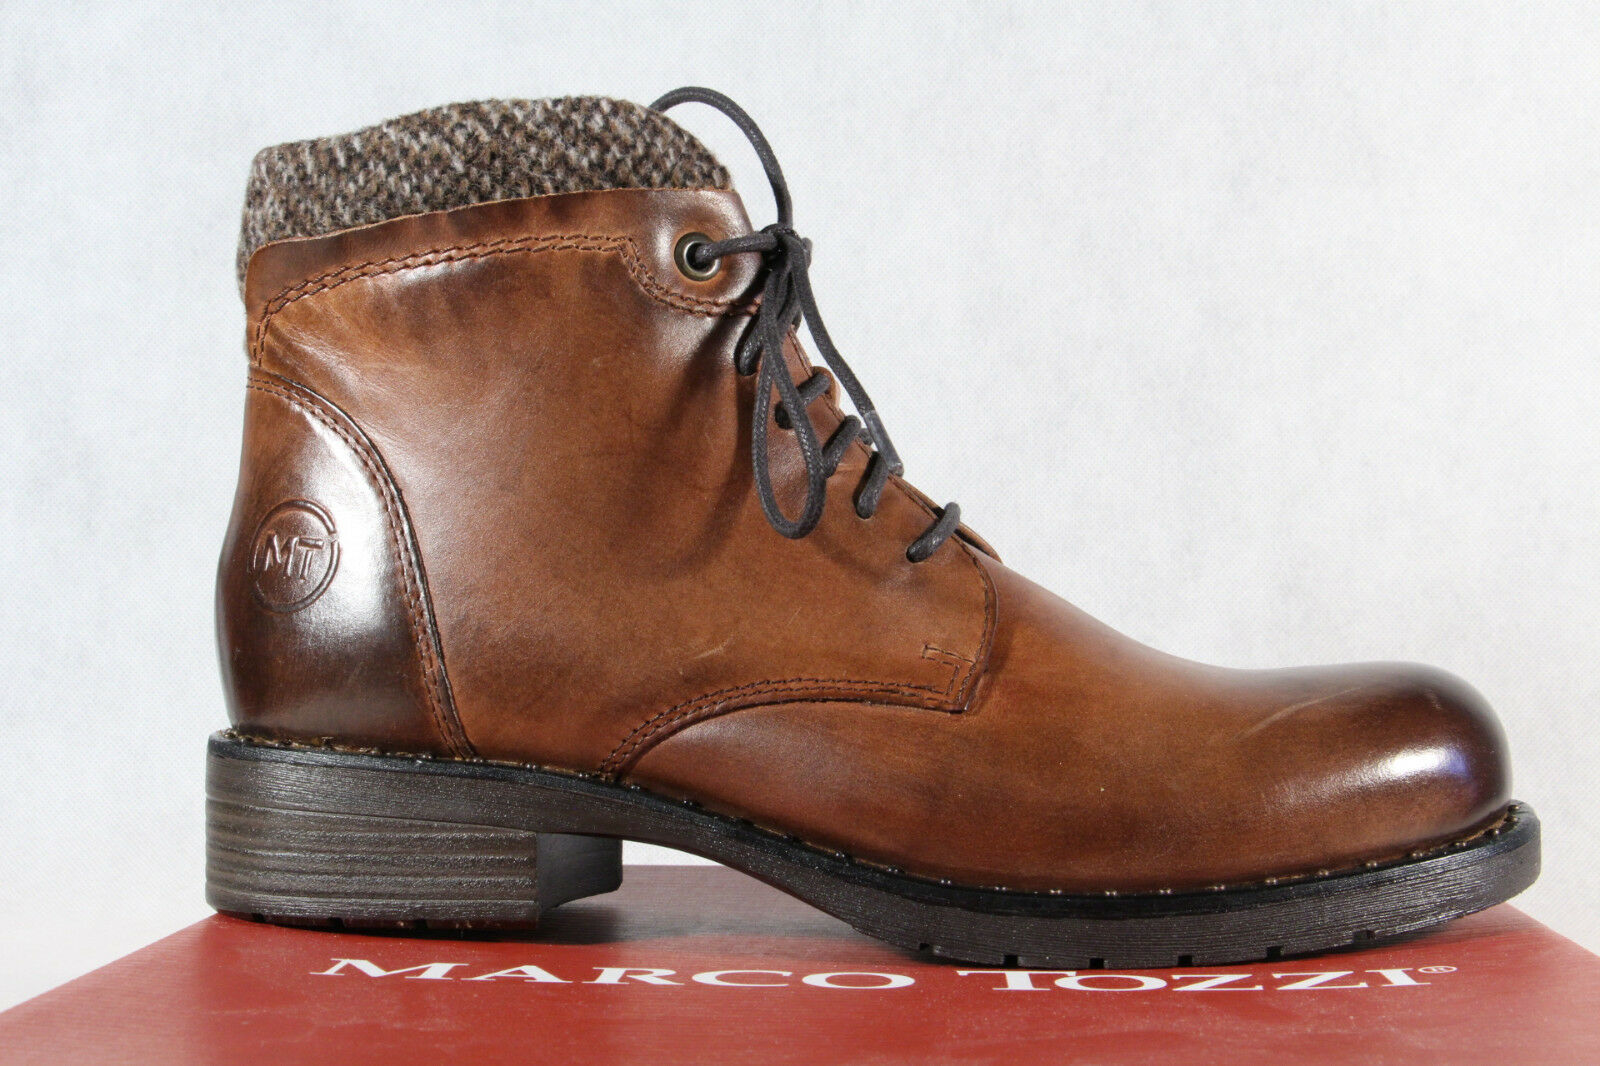 Marco Tozzi Boots Boots Boots Ankle Boot Boots Lace up Boots Brown Leather 25800 New b546a9